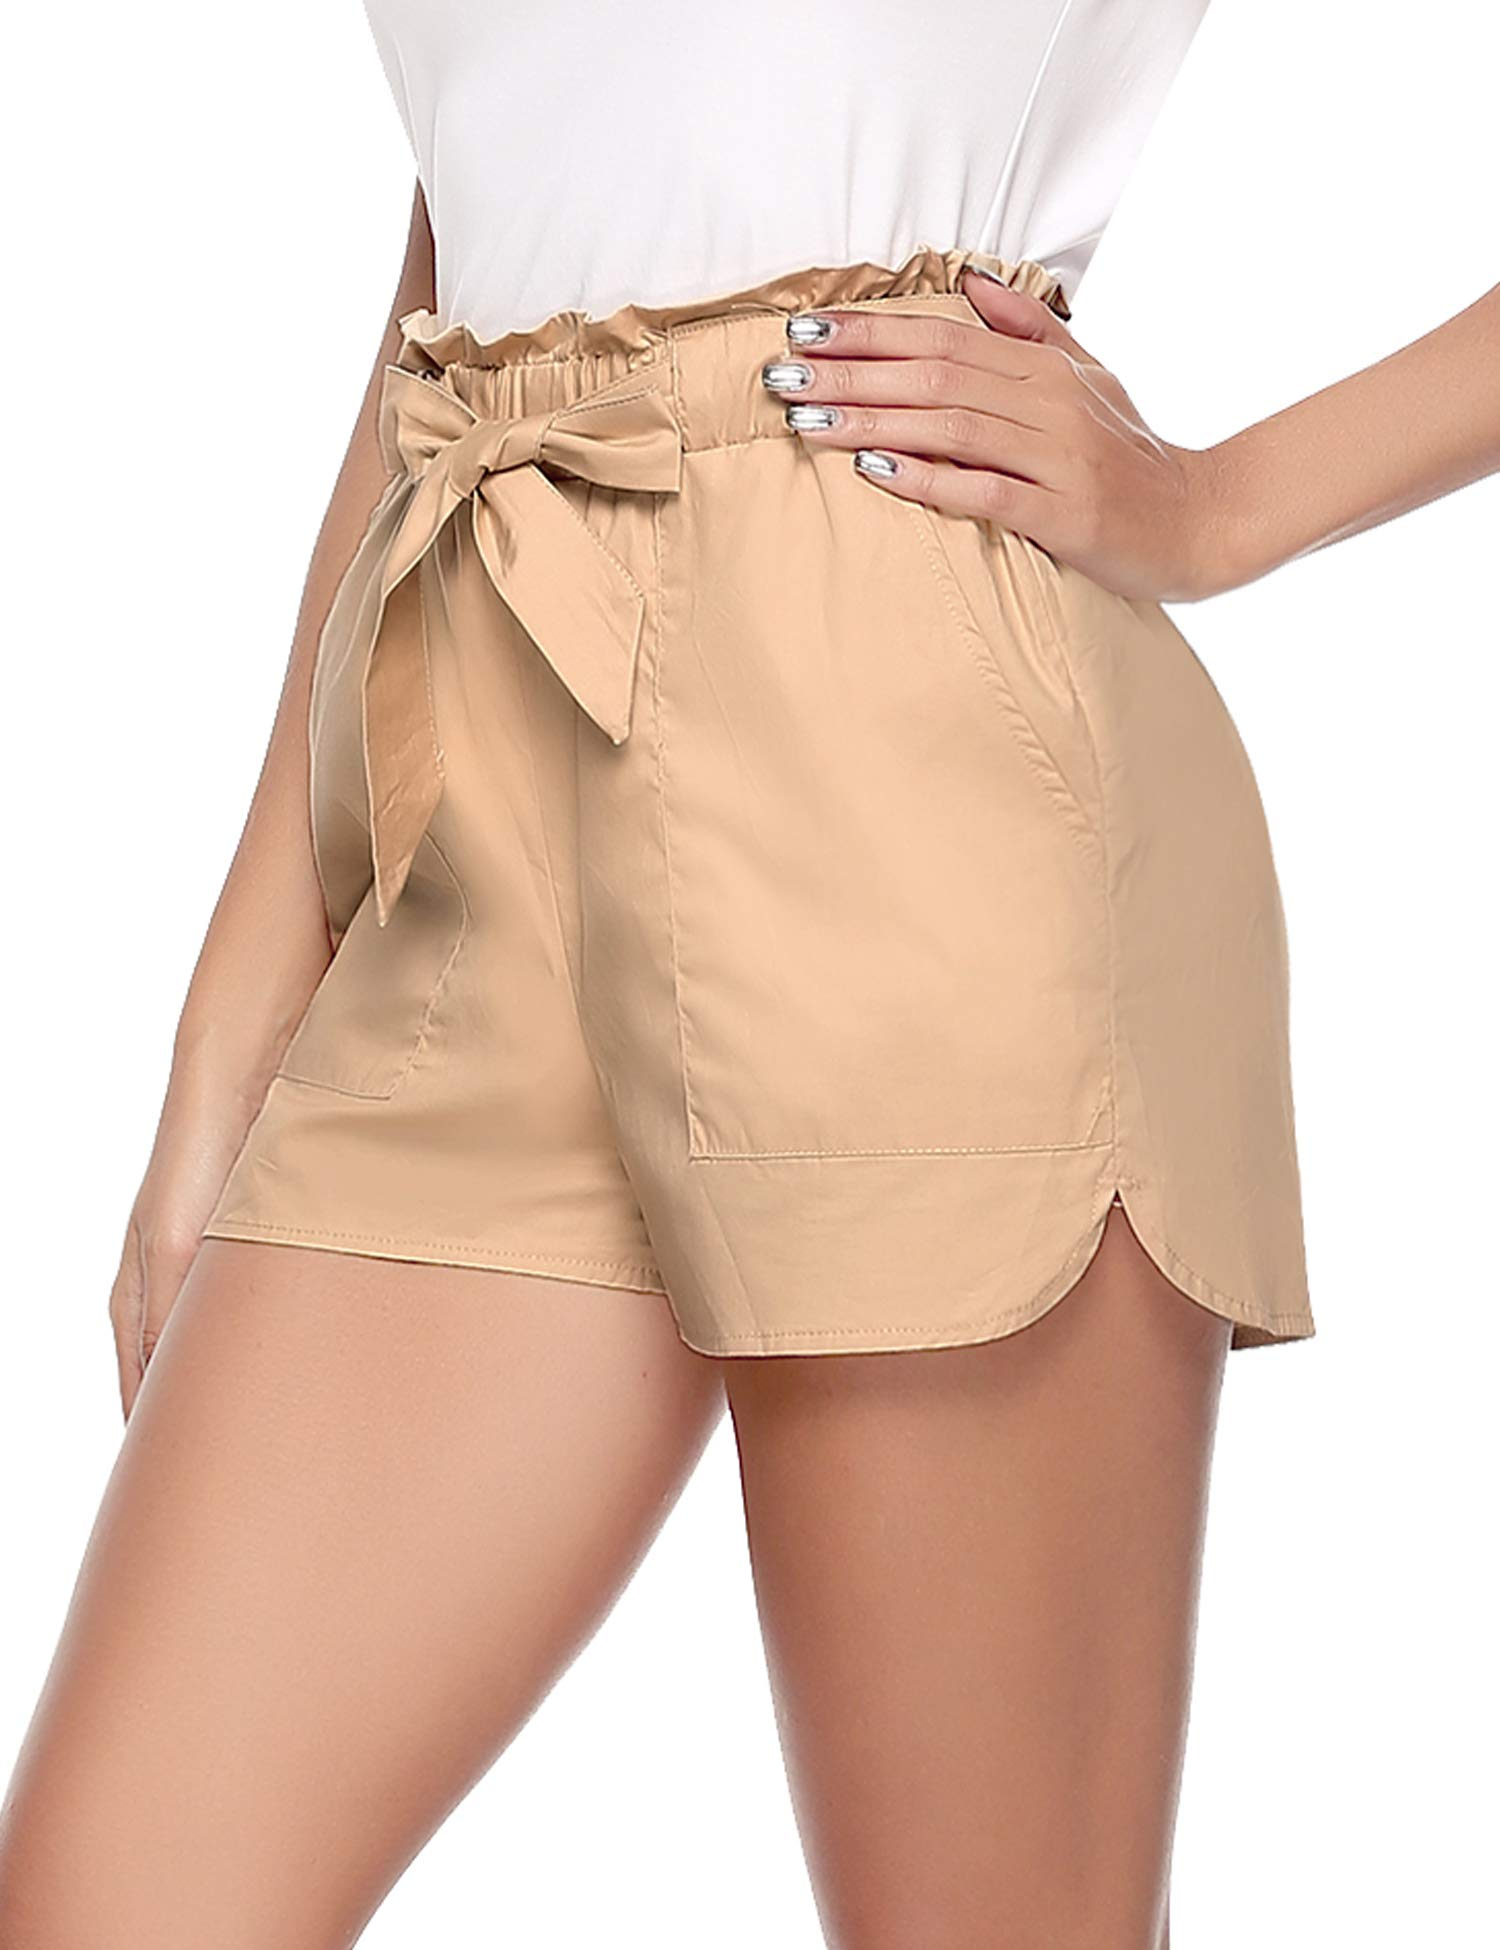 Aibrou Workout Shorts for Women Solid Shorts High Waisted Tie Casual Summer Shorts with Pockets